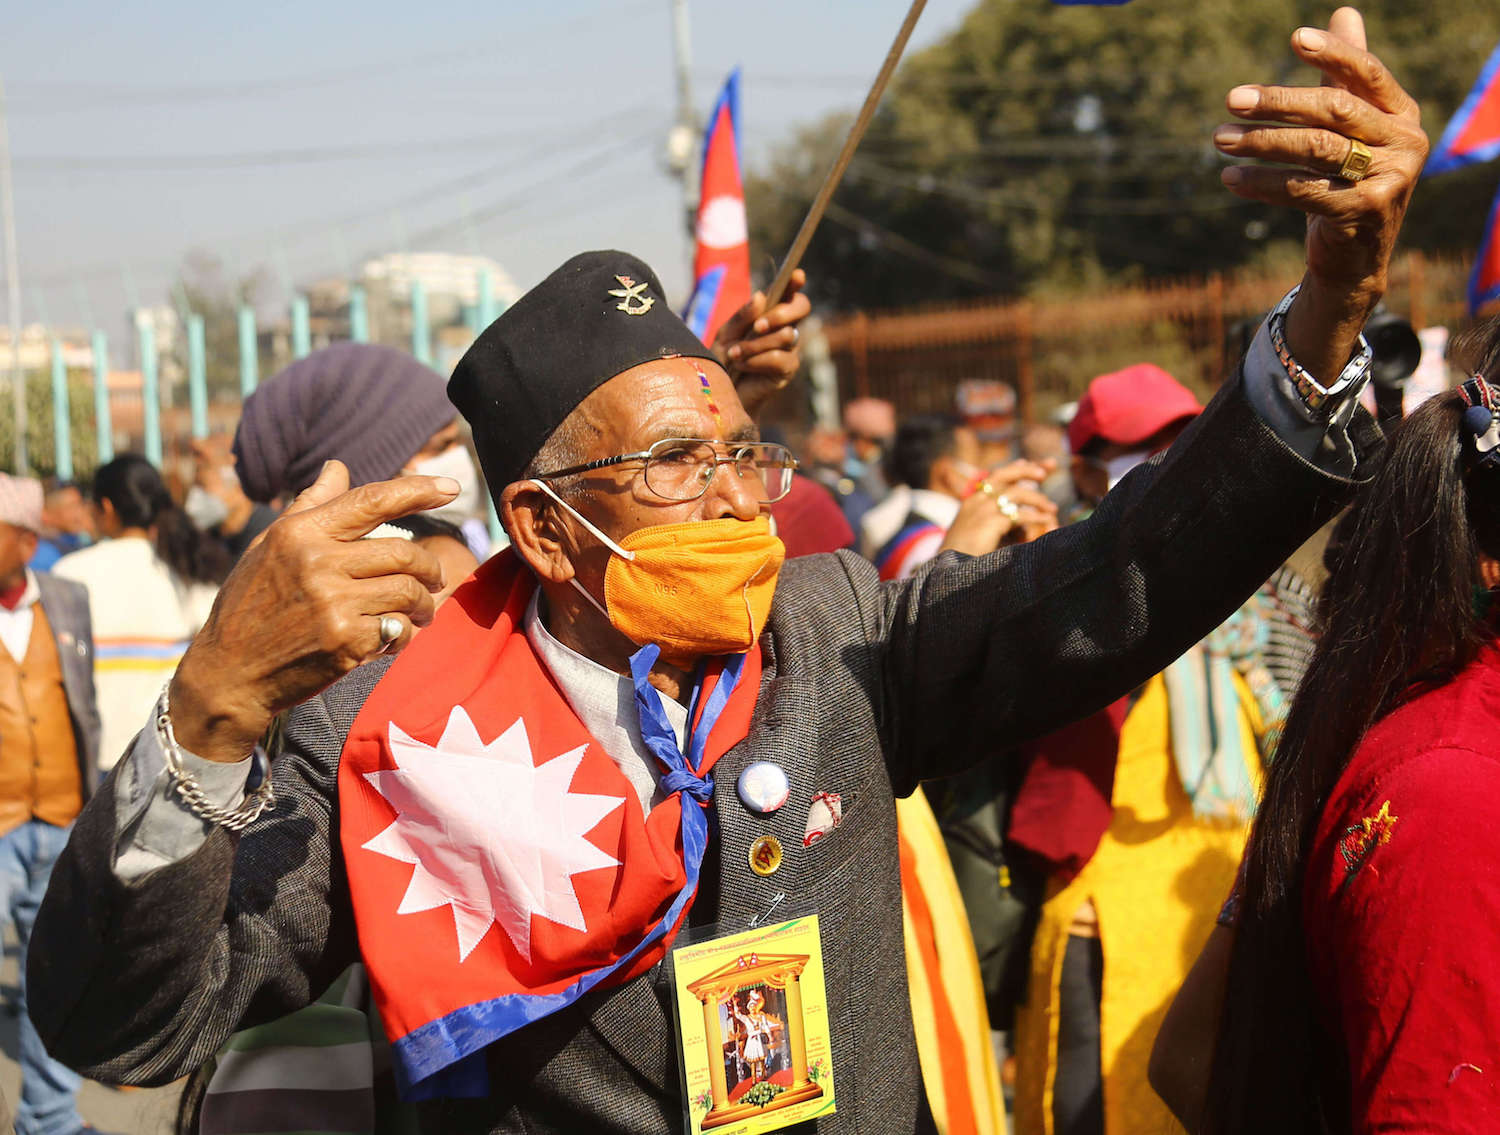 Locals participate in an event to mark National Unity Day and King Prithvi Narayan Shah's 299th birth Anniversary in Singha Darbar, Kathmandu on Monday.